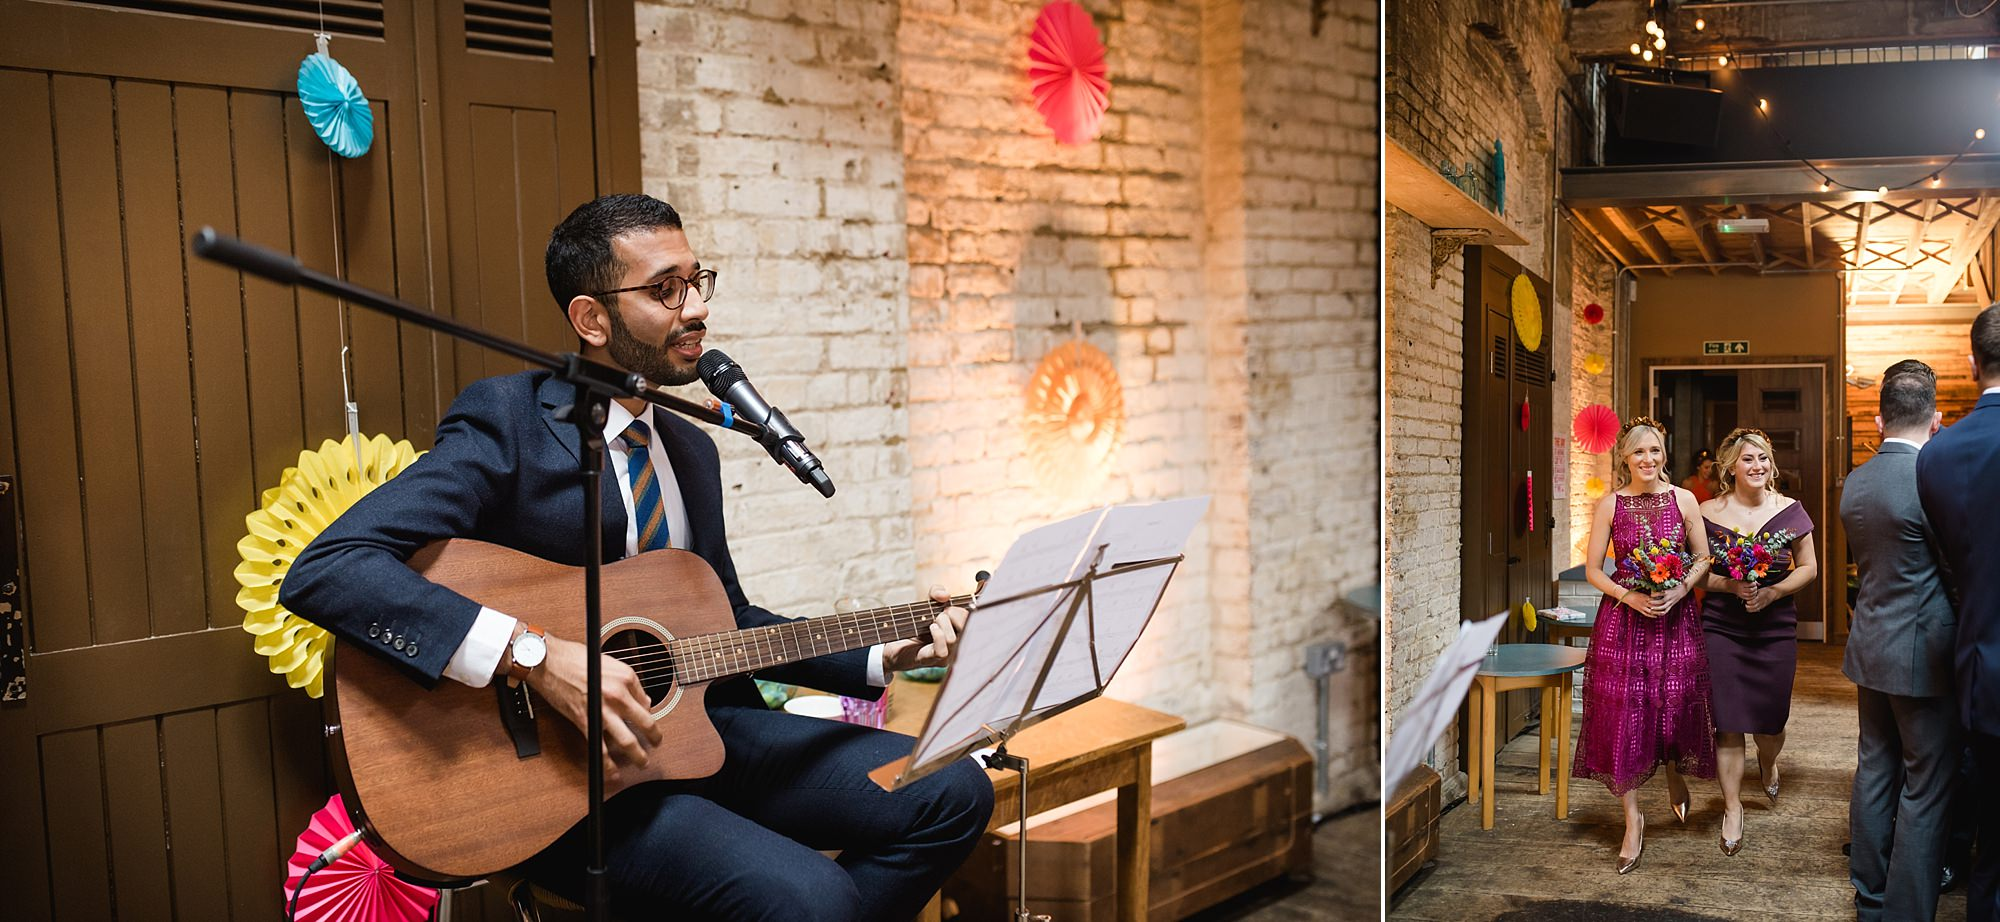 Fun London Wedding a musician sings as bridesmaids walk down the aisle